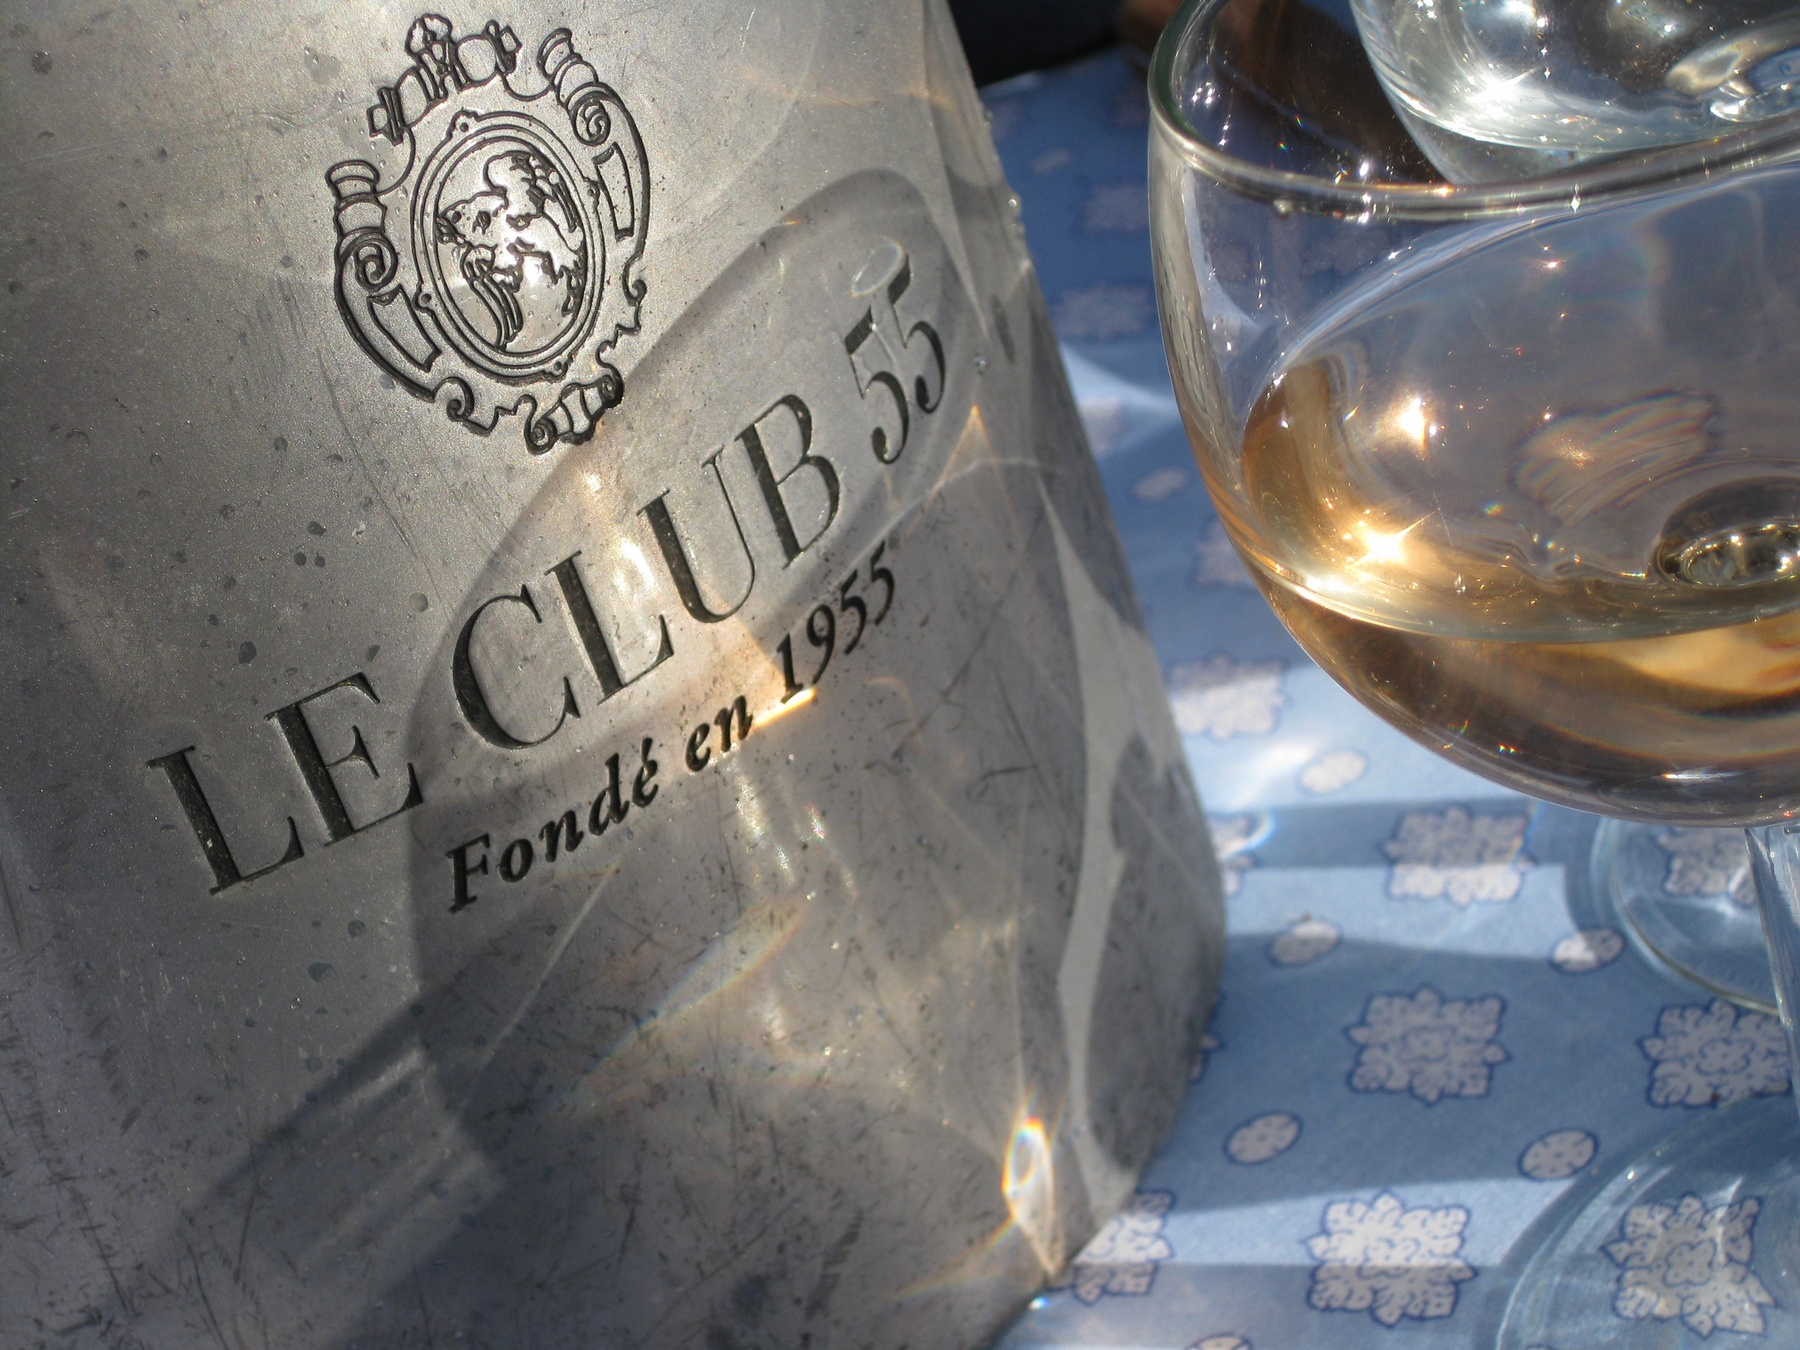 Club 55 St Tropez Ramatuelle lunch